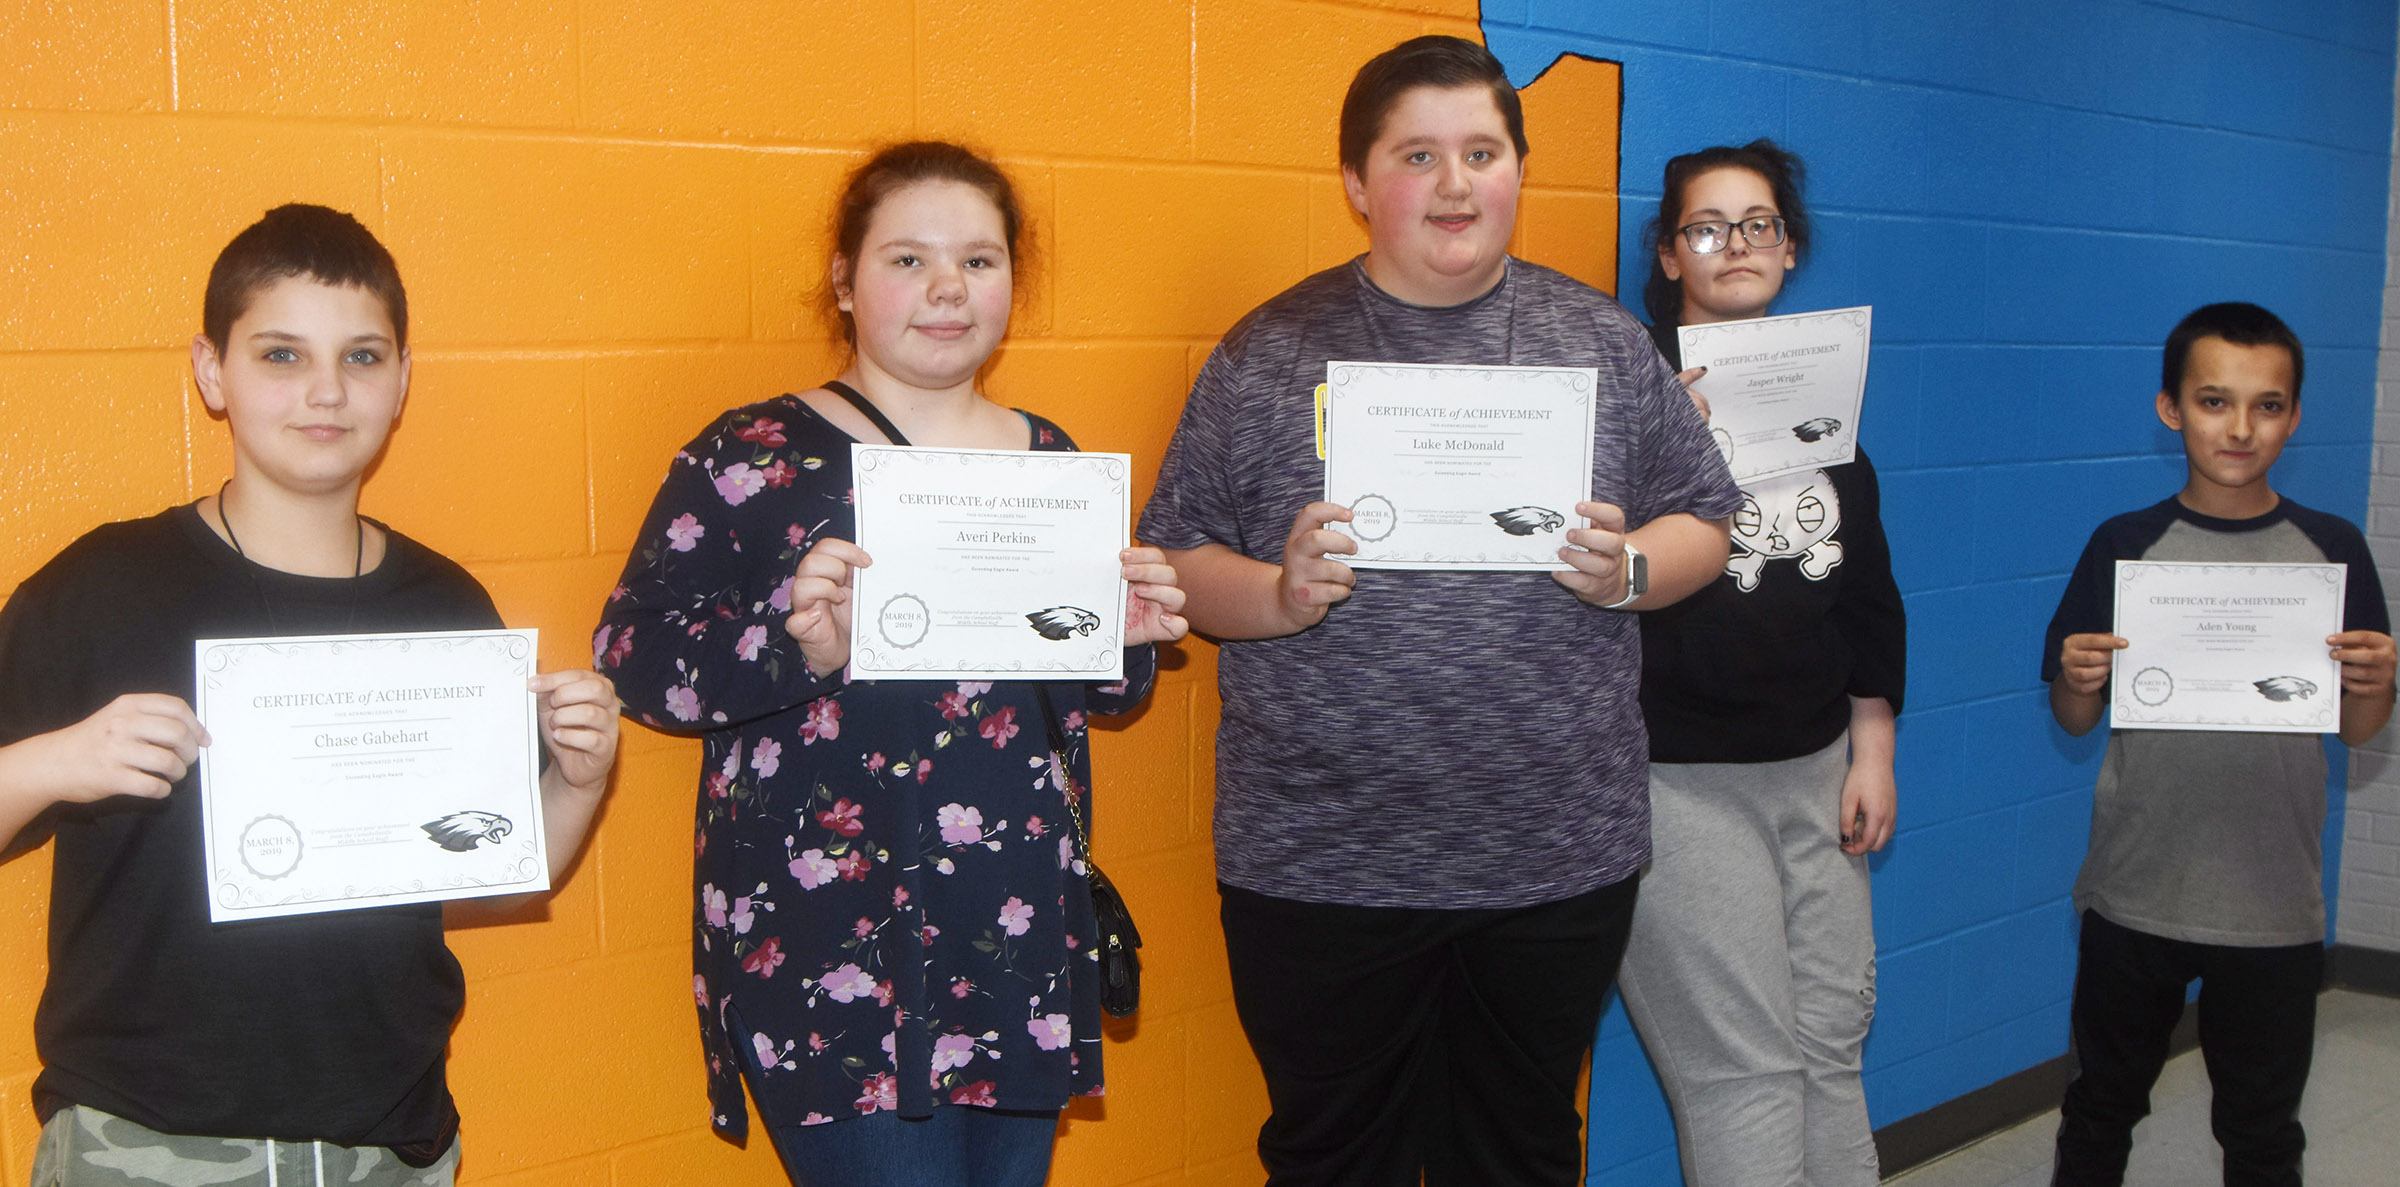 CMS Exceeding Eagles for the week of March 4 are, from left, sixth-graders Chase Gabehart and Averi Perkins, seventh-graders Luke McDonald and Jasper Wright and eighth-grader Aden Young. Absent from the photo is eighth-grader Bre Humphress.